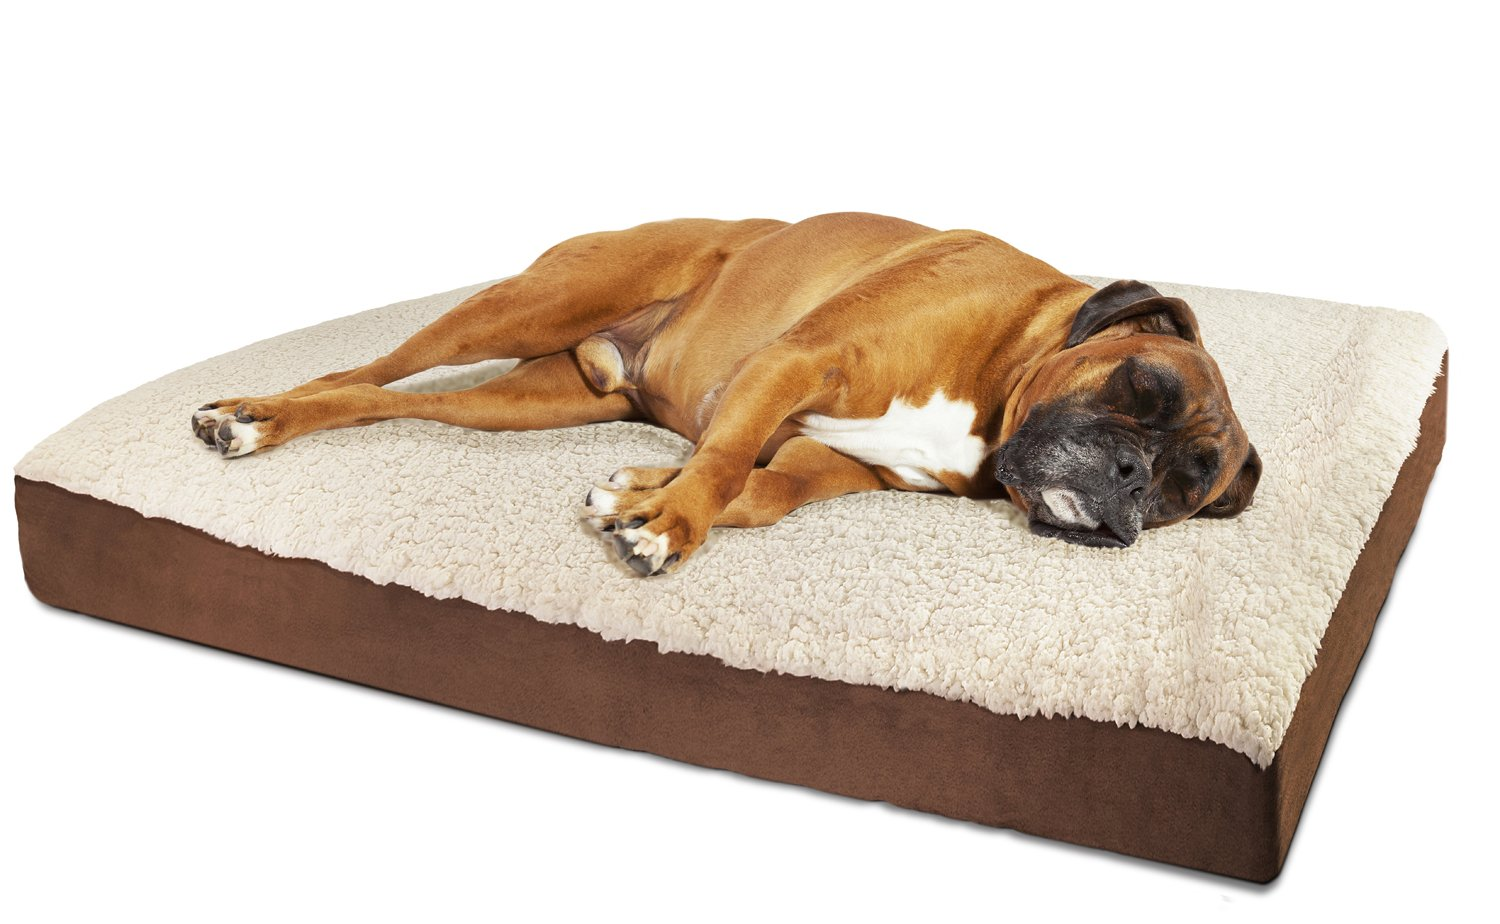 Extra large orthopedic dog beds best price - Amazon Com Oxgord Orthopedic Pet Bed Foam Mattress For Dogs Cats Quilted Rectangular Fits Crate Carrier Extra Large 44 Long X 35 Wide Pet Supplies